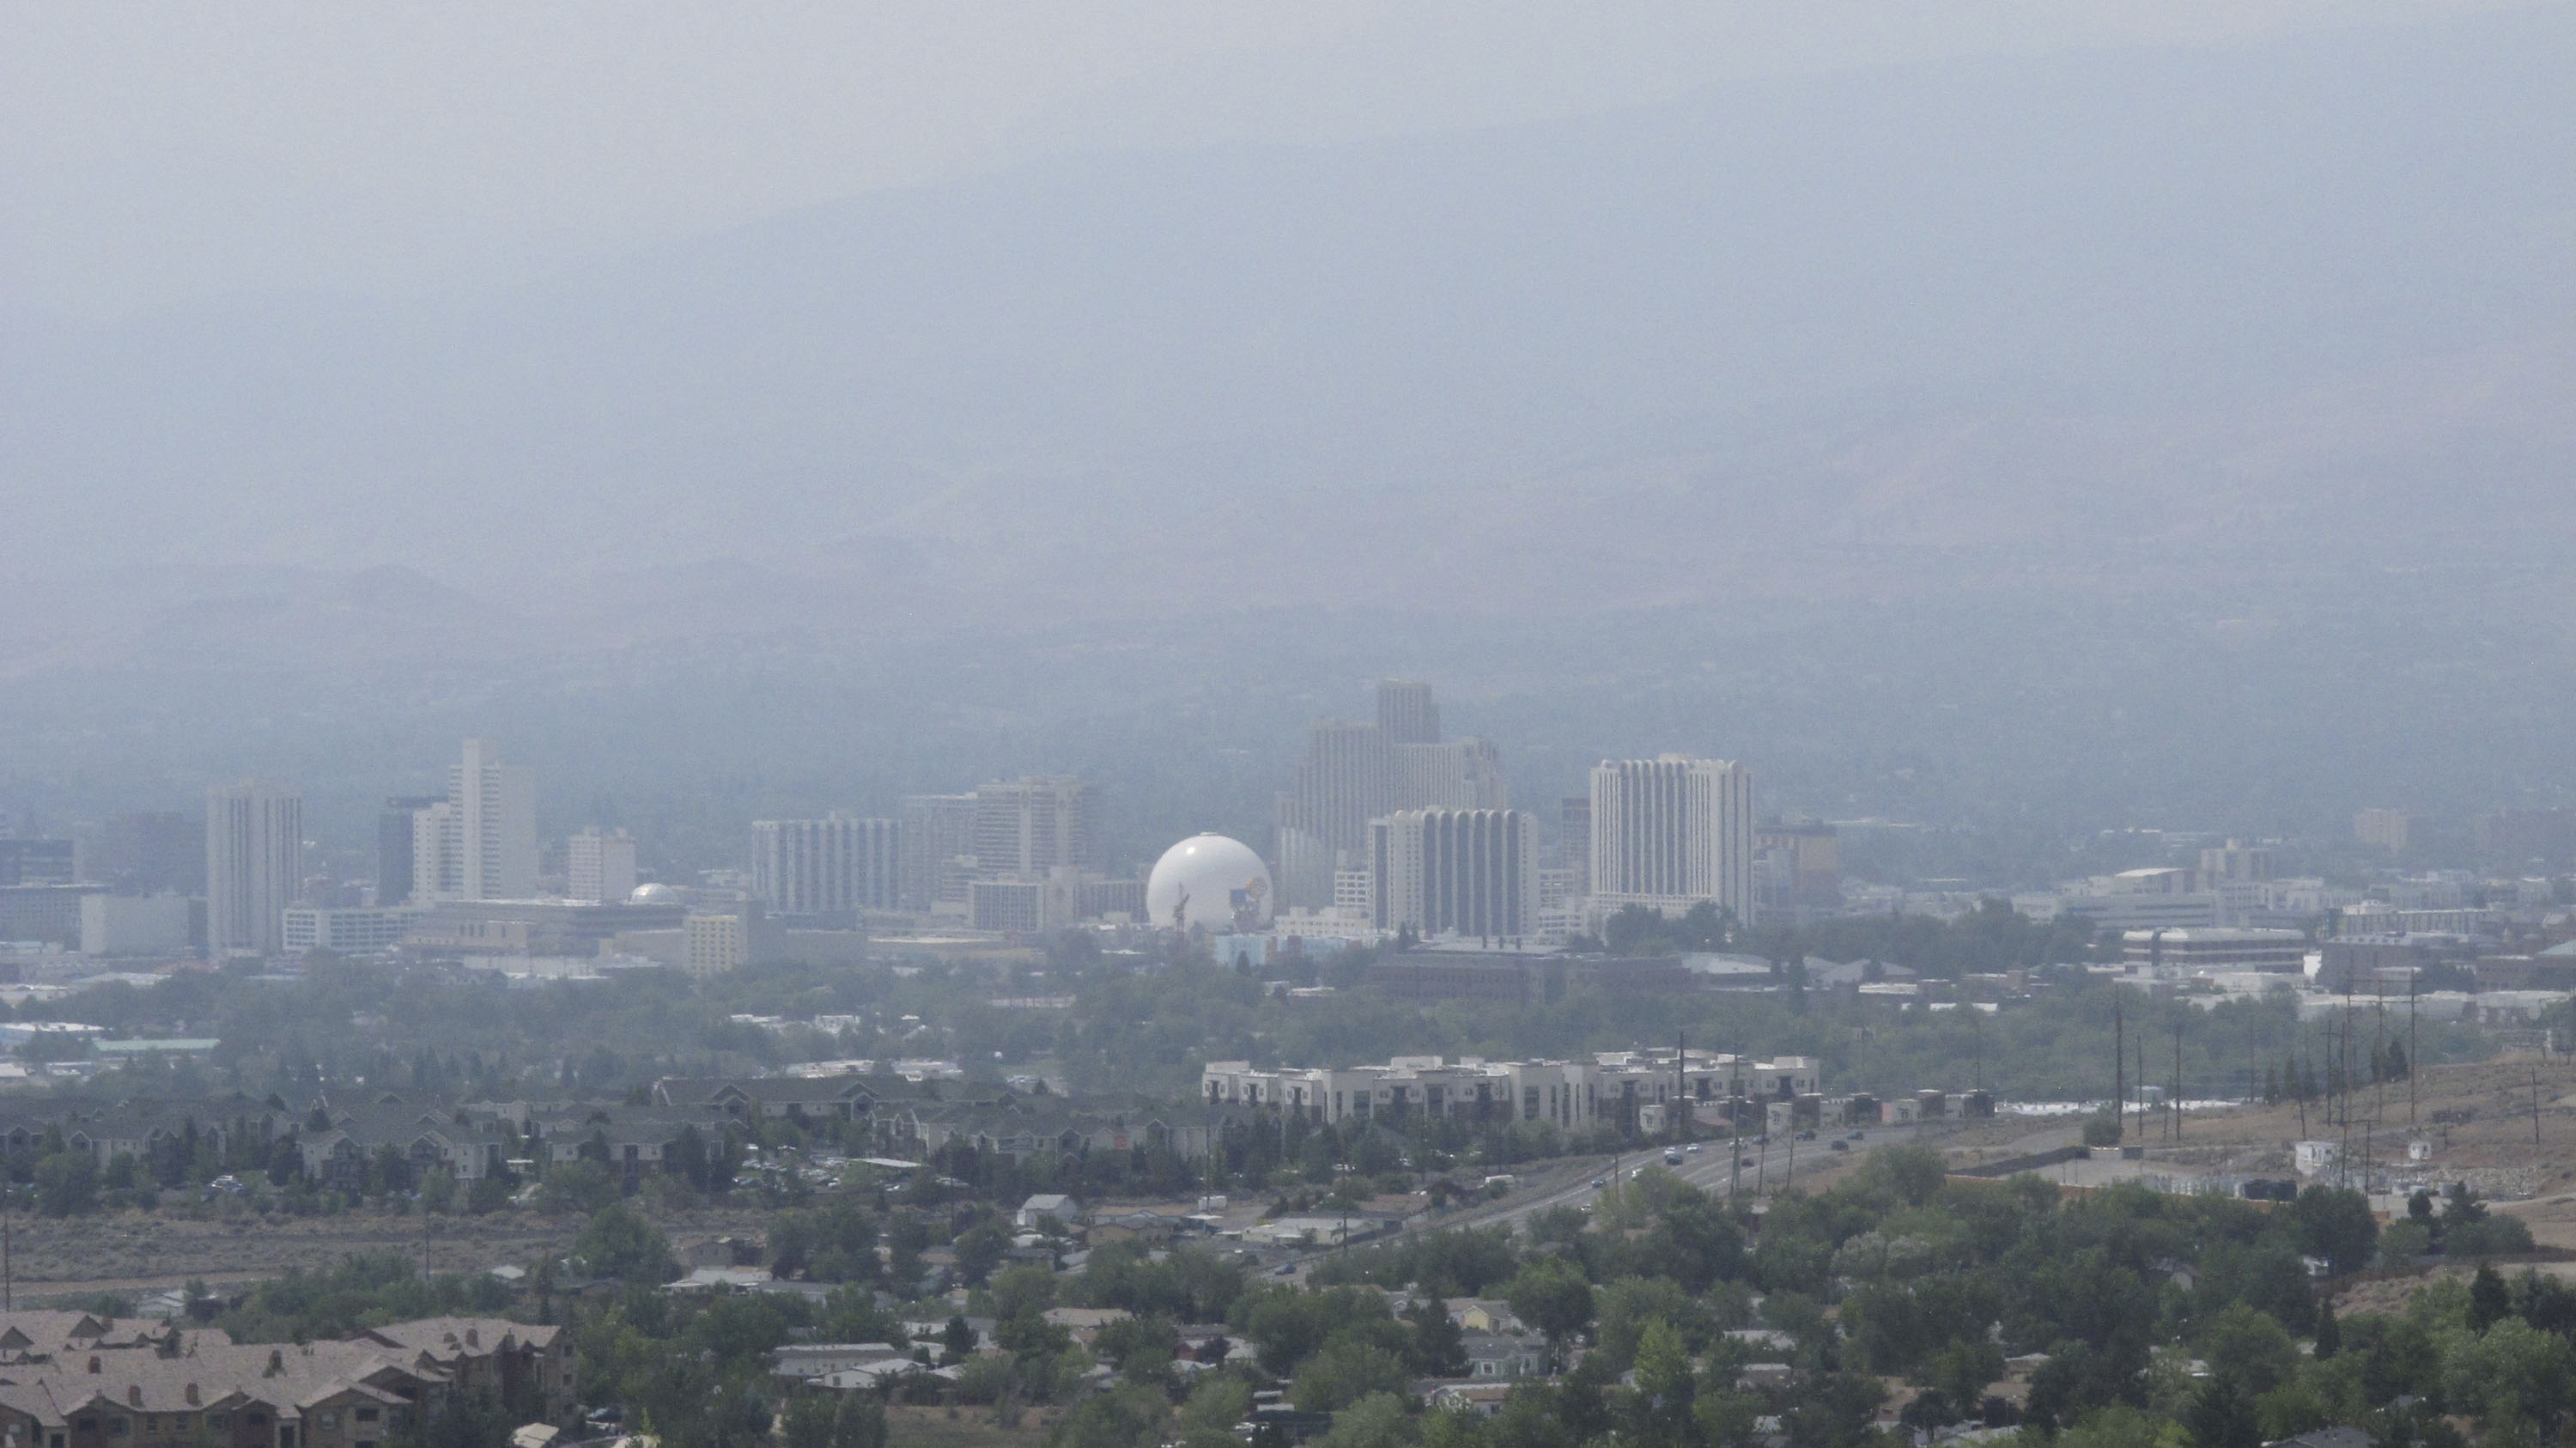 Smoke from wildfires in California covered downtown Reno, Nevada in the United States, which has contributed to air pollution.